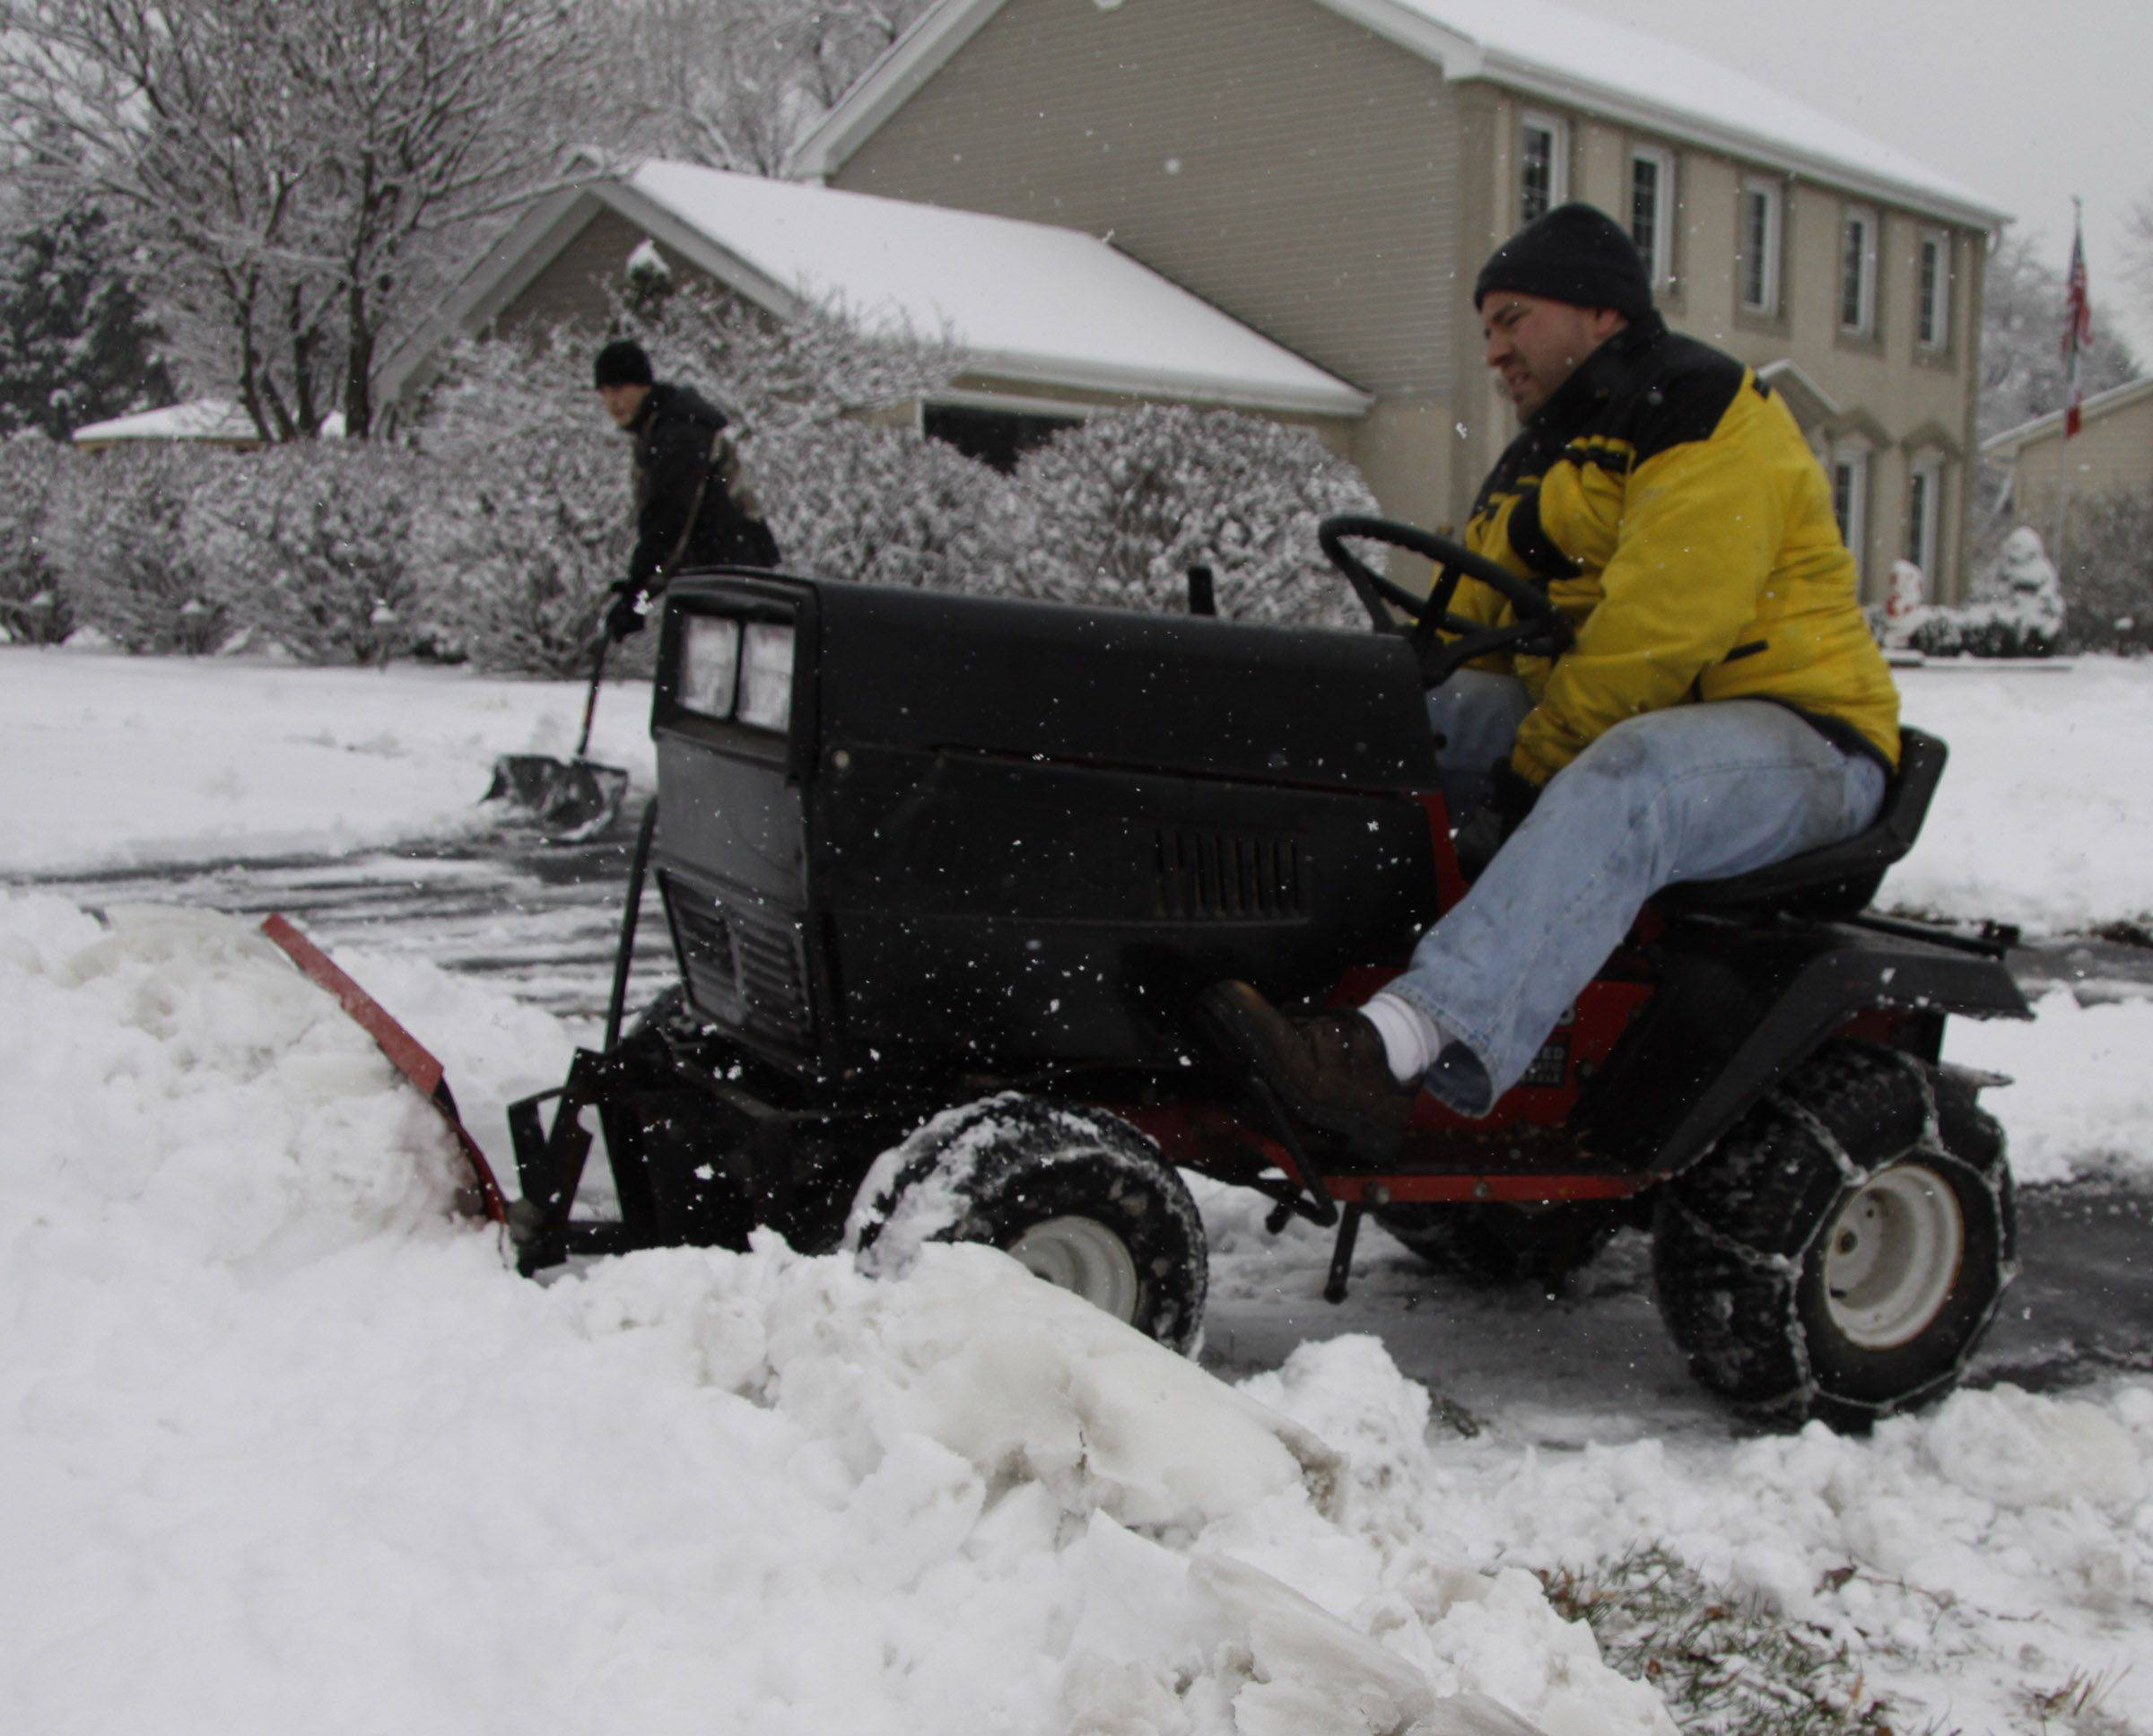 "Matt West plows a stretch of sidewalk in his Glendale Heights neighborhood Saturday. ""I do my two neighbors' driveways and I plow the sidewalk from Meddowlark to Cardninal every year,"" said West, whose sons Mike, background, and John joined the effort. ""Our little neighborhood is these three houses on Army Trail. We take care of each other."""